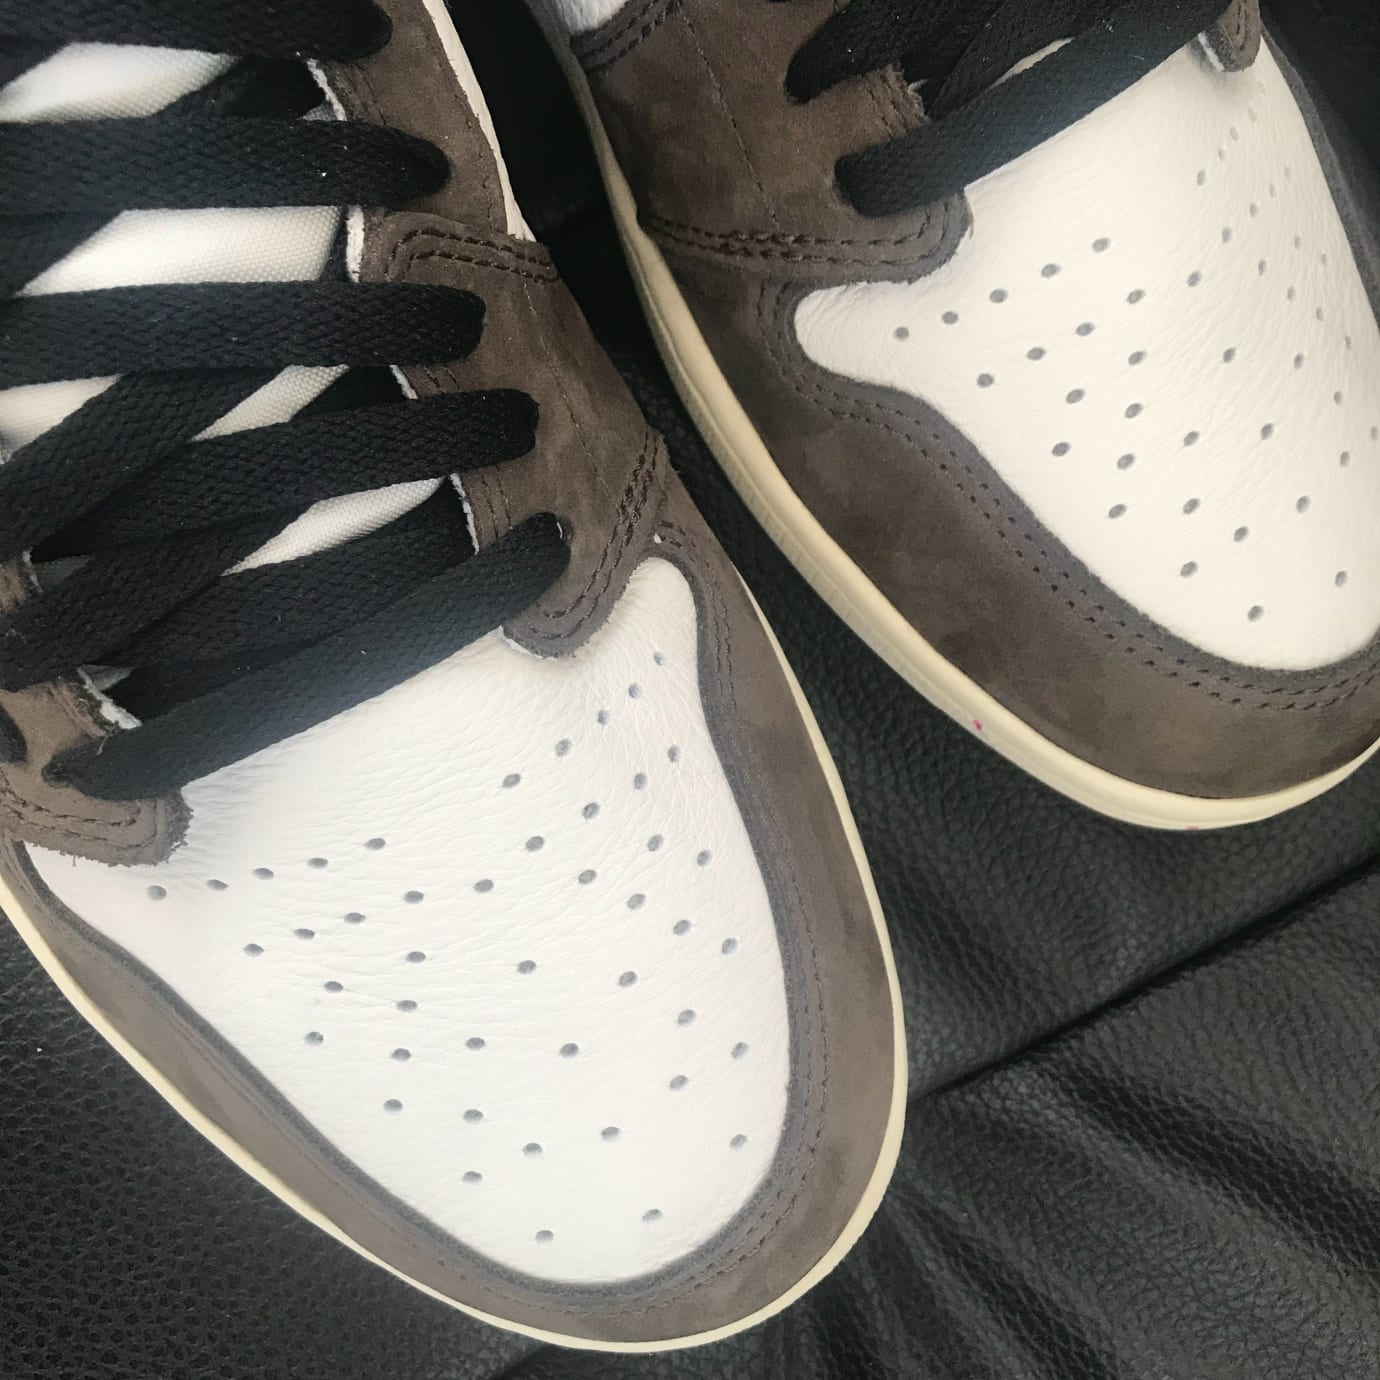 d14724e3829017 Image via Weibo.cn Travis Scott x Air Jordan 1 High OG TS SP CD4487-100  (Toe Box